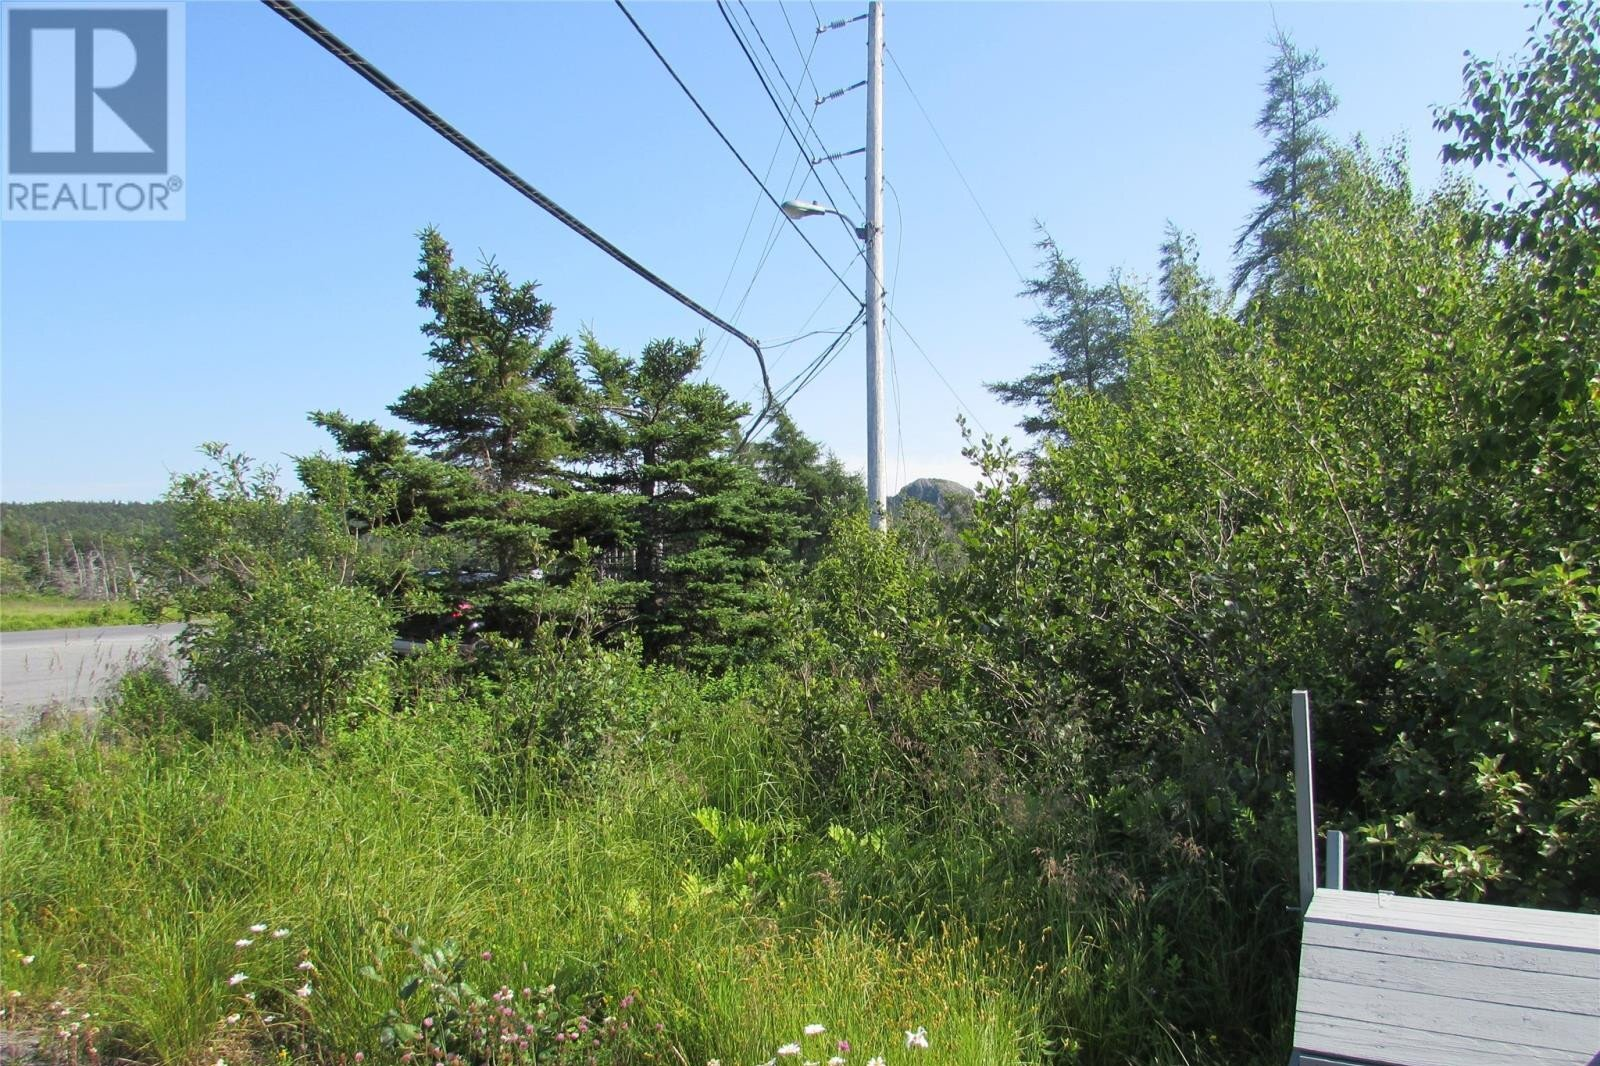 Home for sale at 8 Barry's Island North Rd Avondale Newfoundland - MLS: 1212010